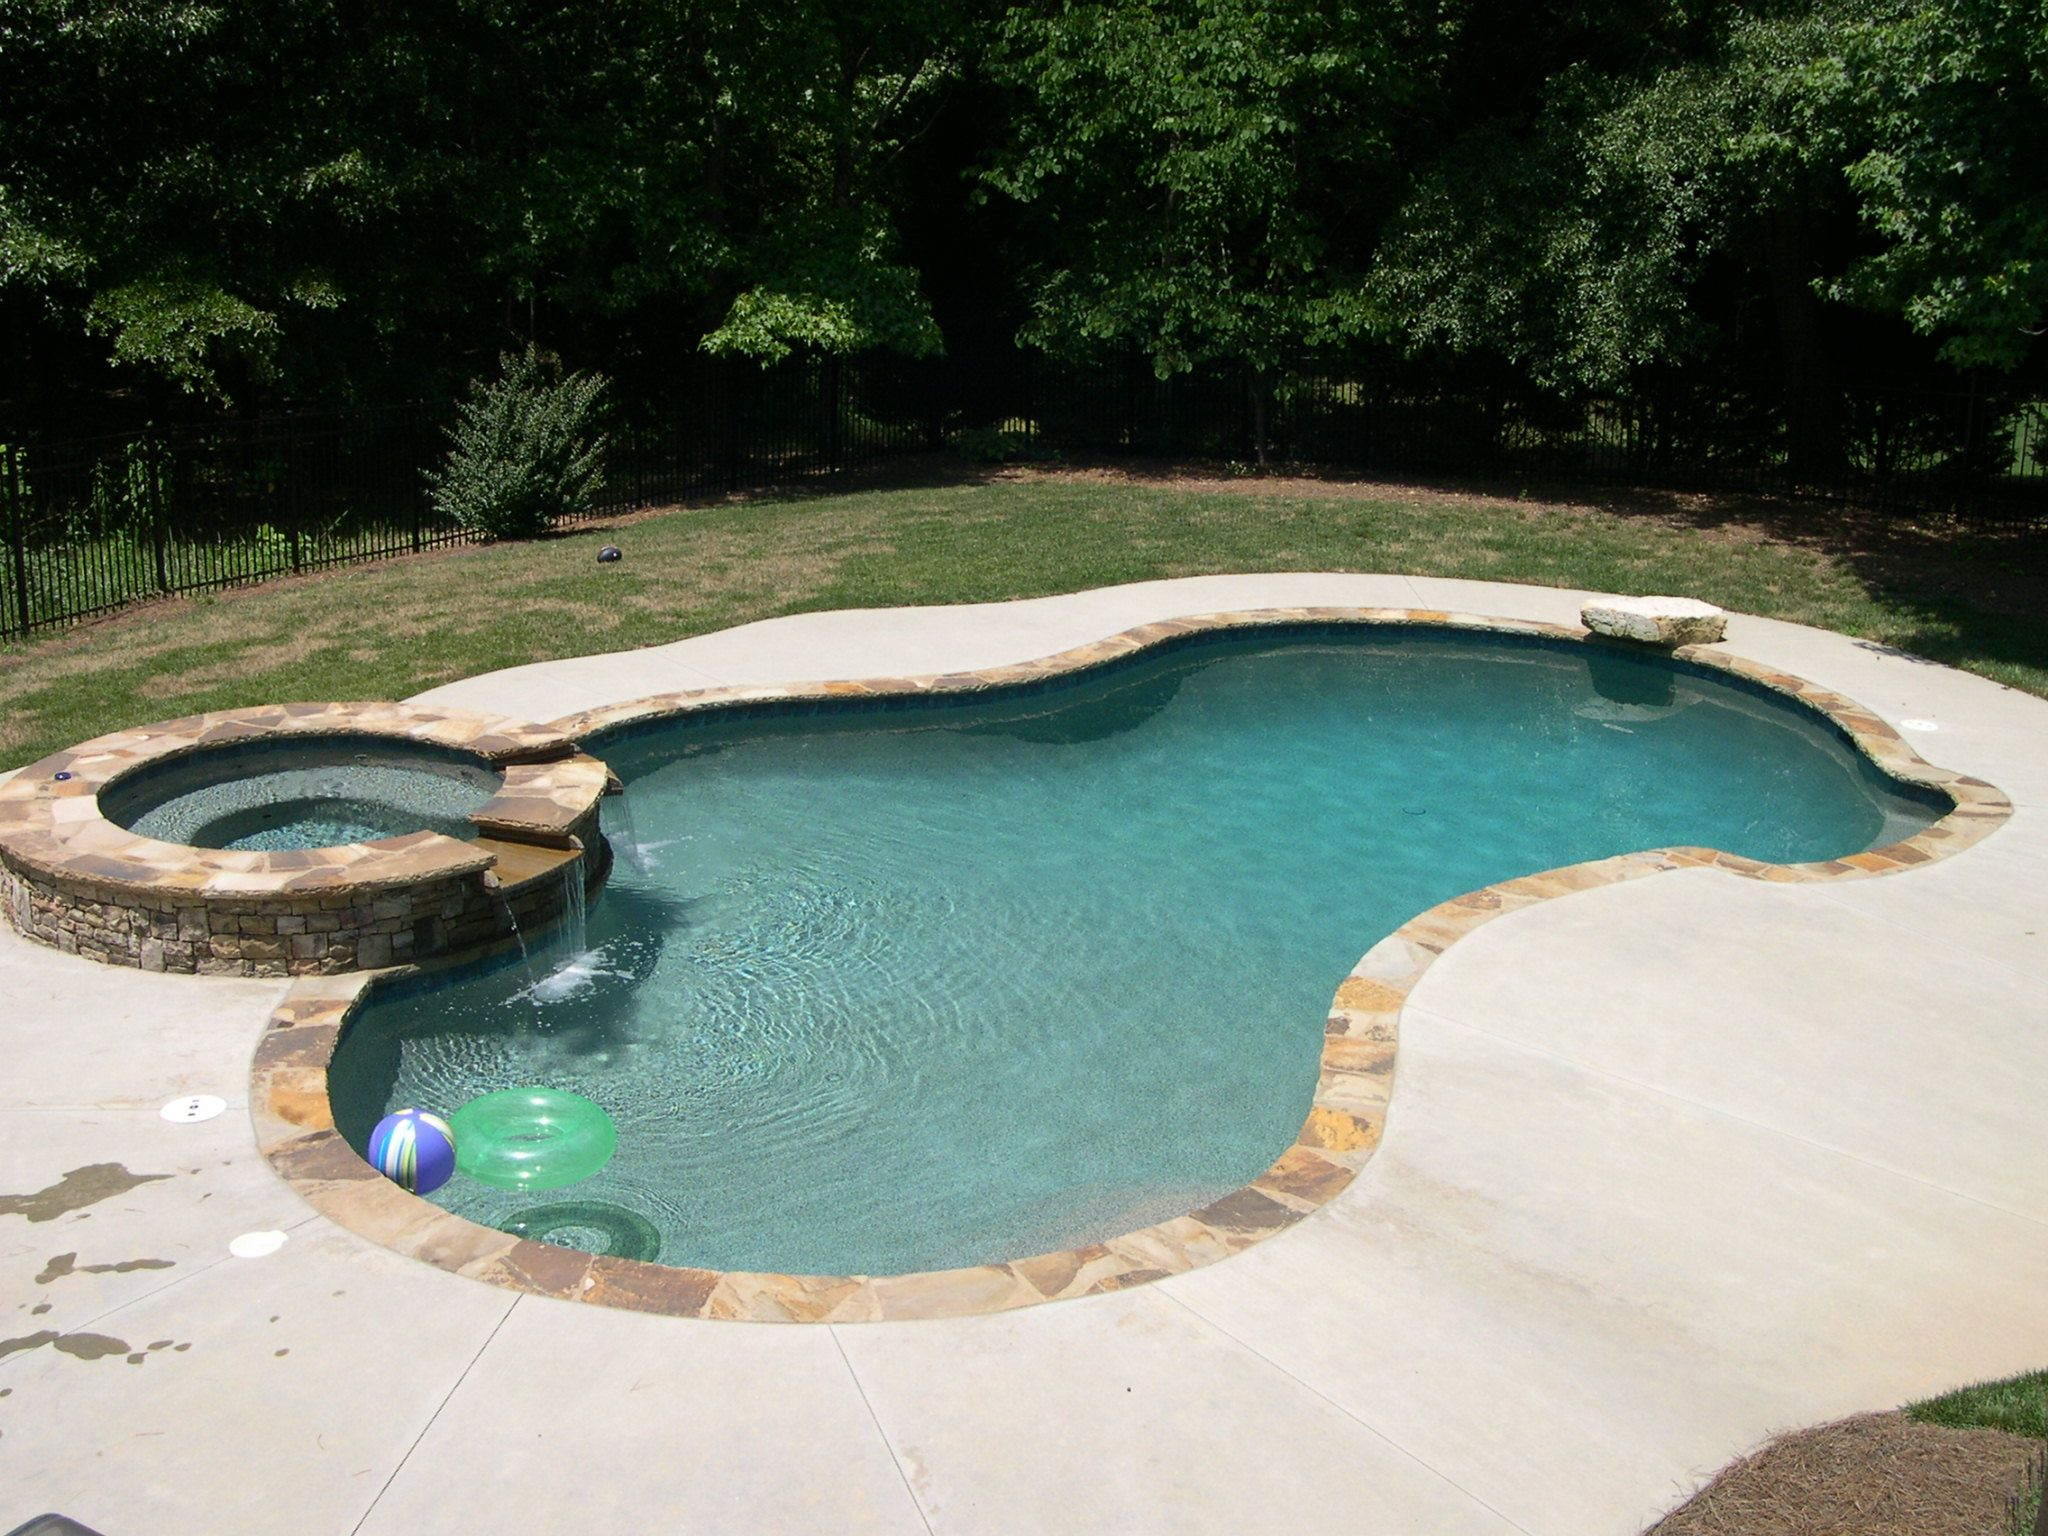 best 25 small inground pool ideas on pinterest small pool design small inground swimming pools and swimming pool size